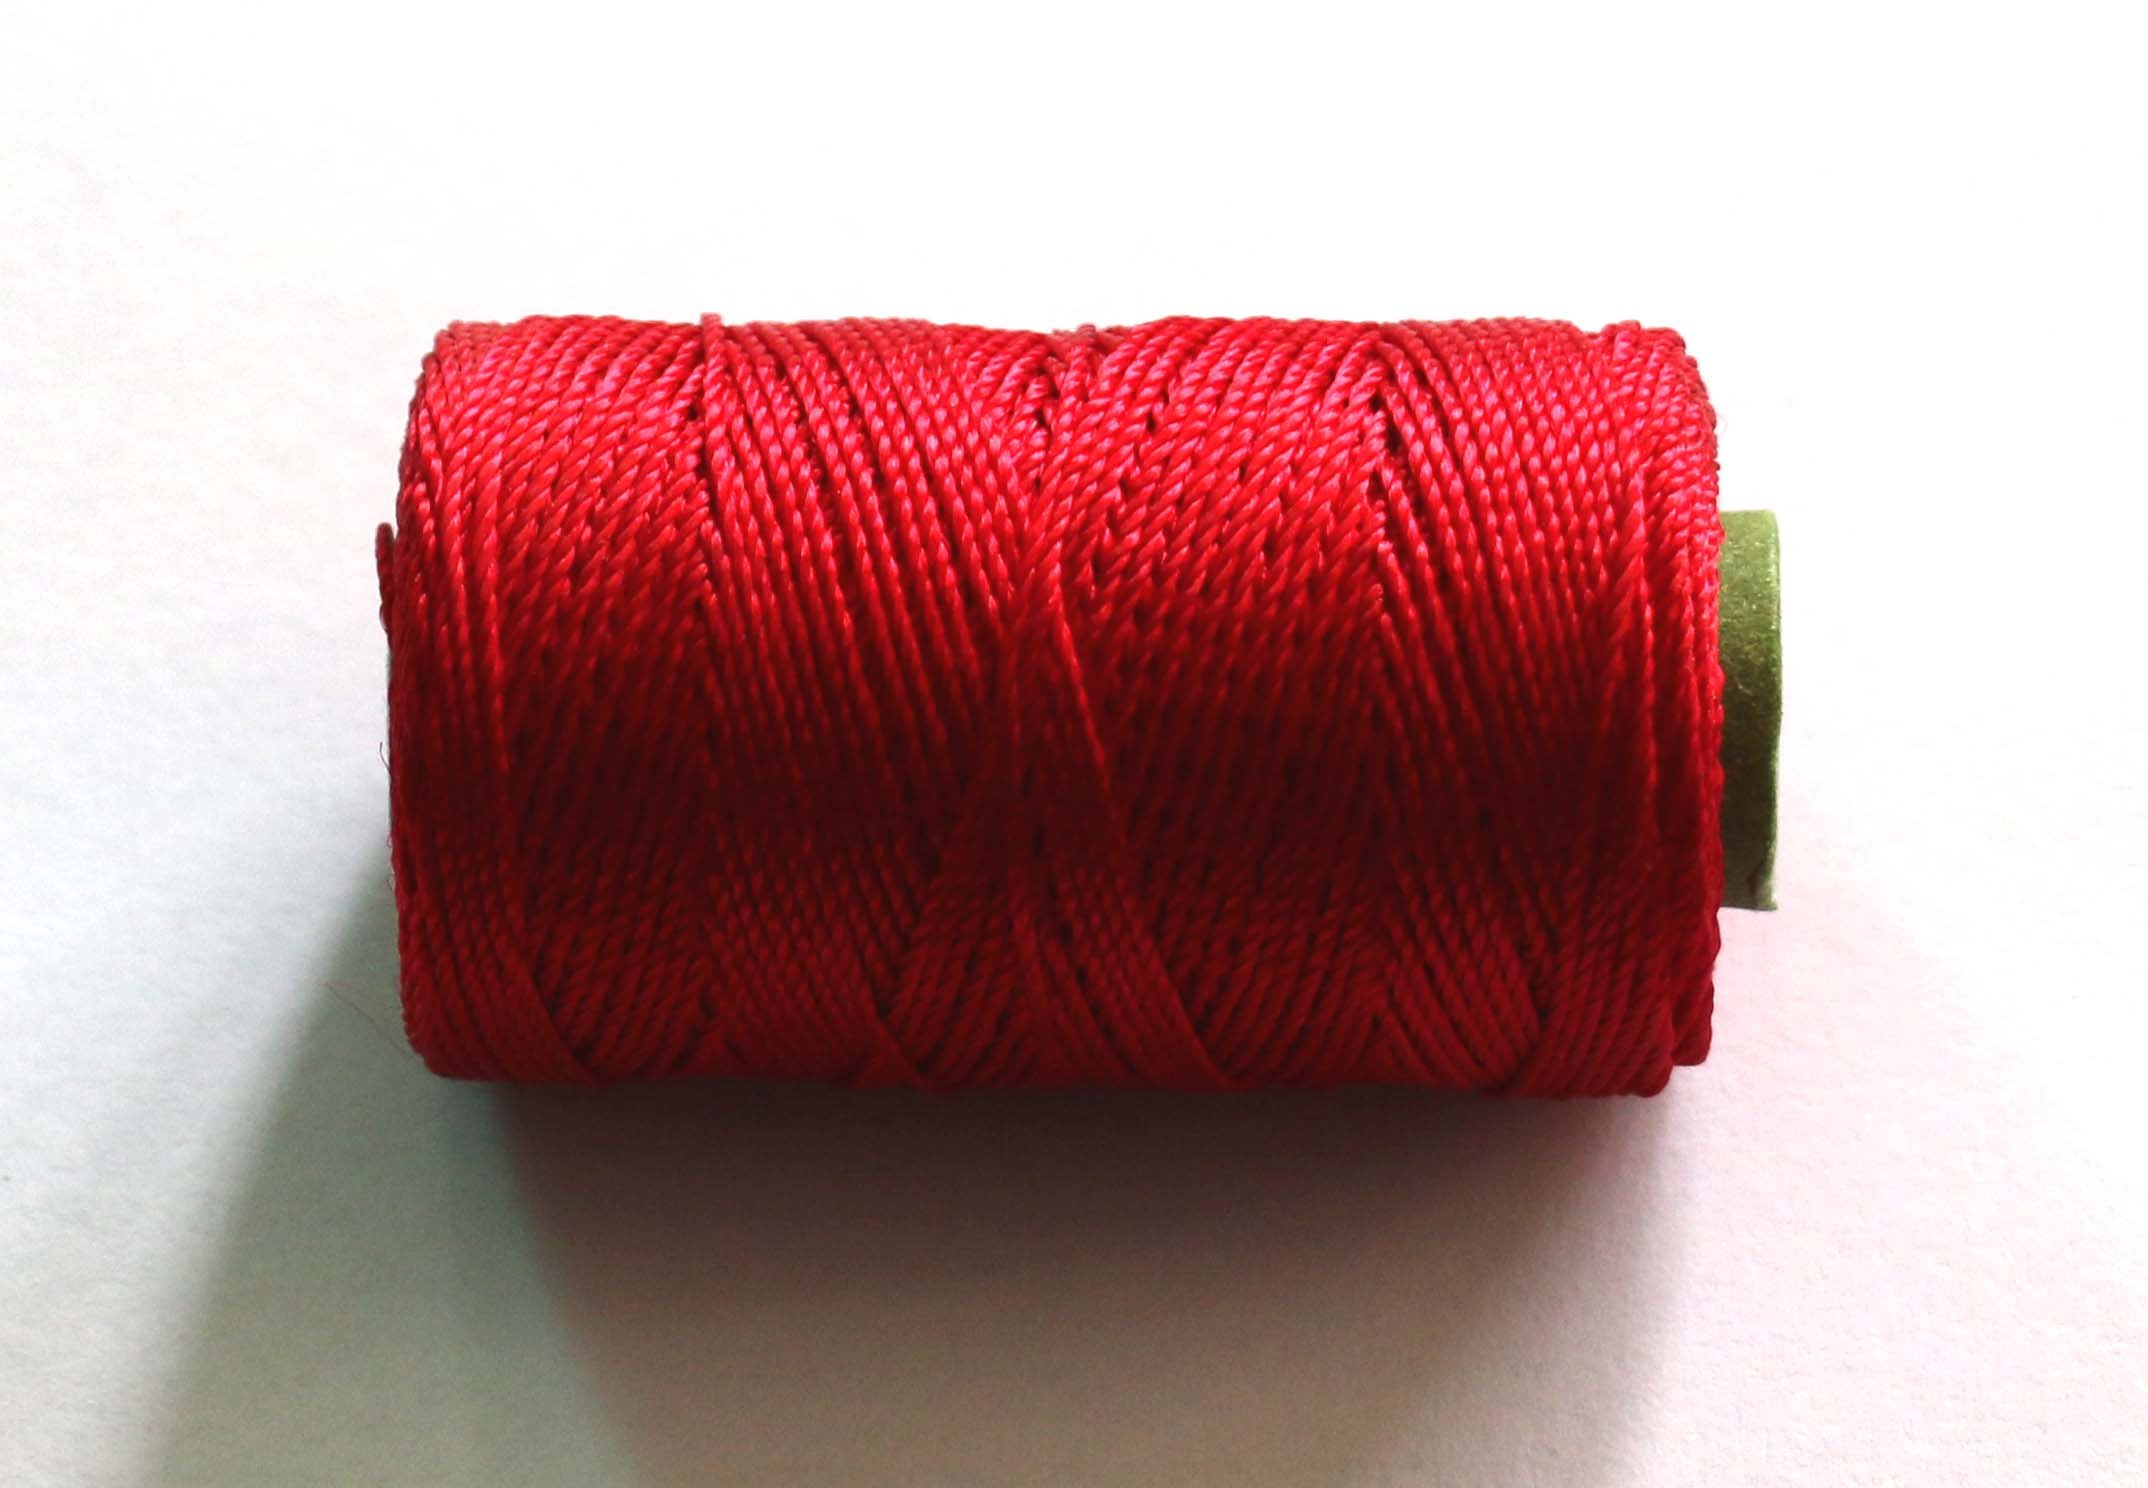 Velvet Thread for Flute, flute tying thread, Red colour, resham dori, D-25